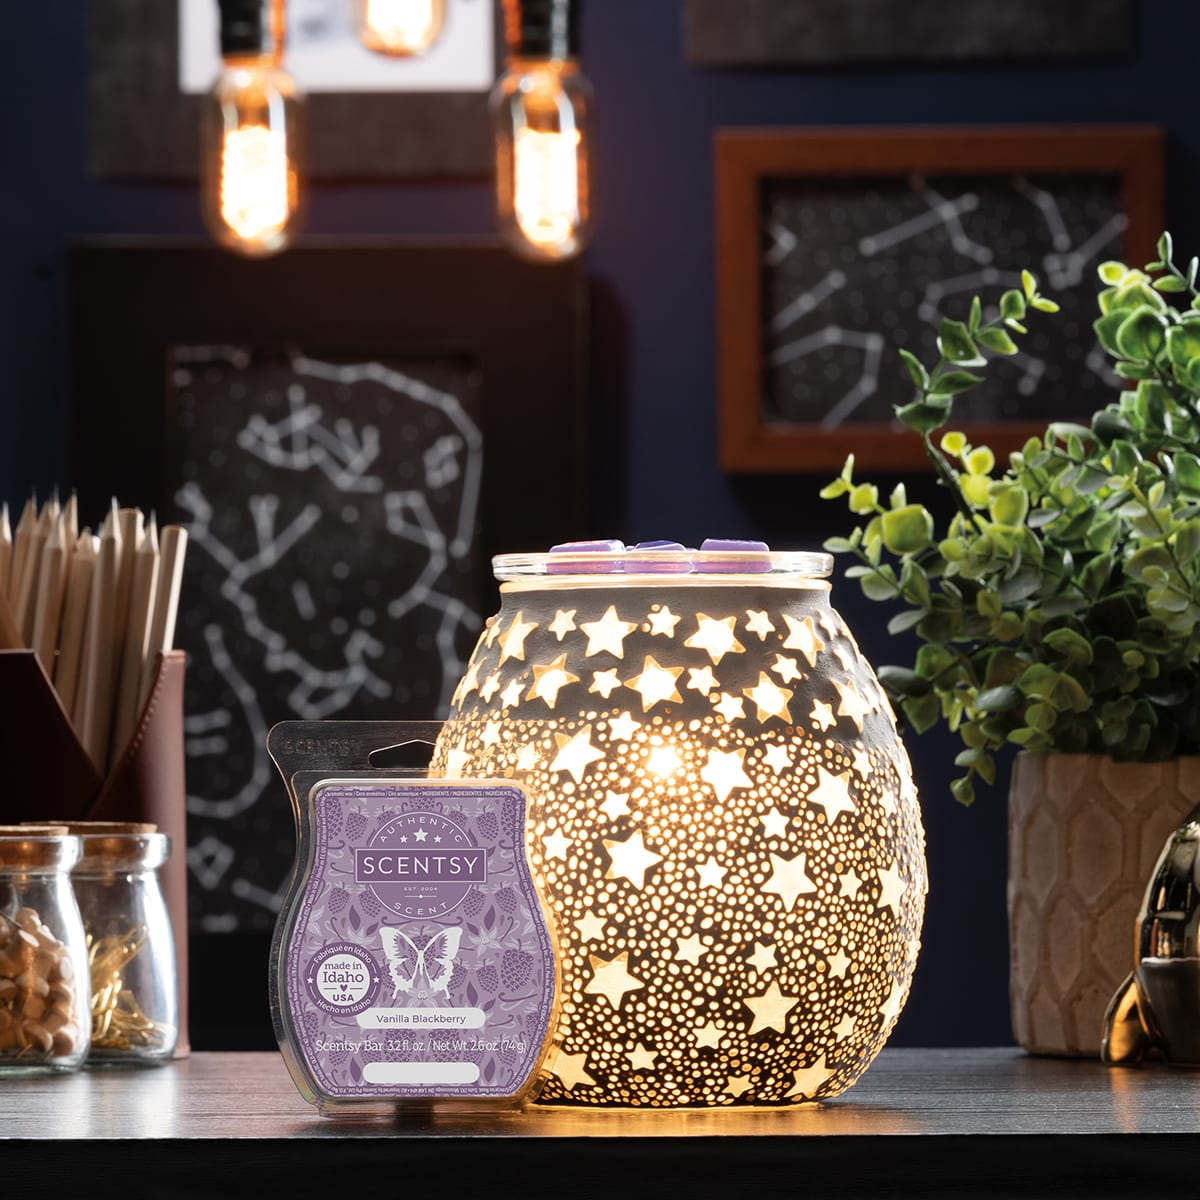 Scentsy August 2021 Warmer & Scent of the Month – Night Sky Scentsy Warmer & Vanilla Blackberry